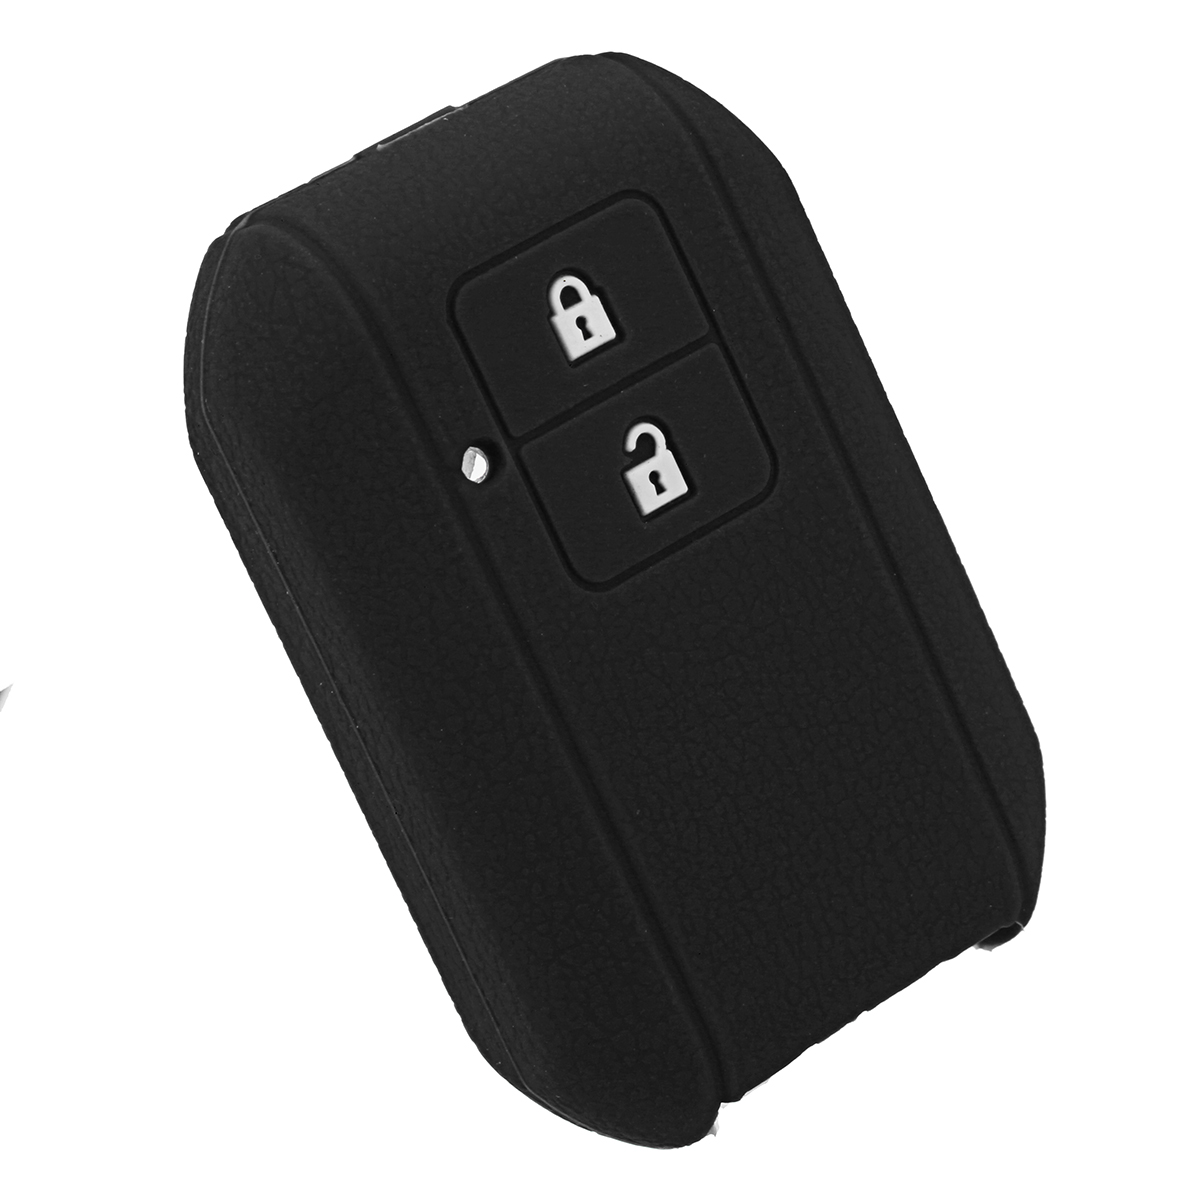 2 Buttons Silicone Rubber Car Remote Key Cover Case Key Shell Protective For Suzuki Swift 2017